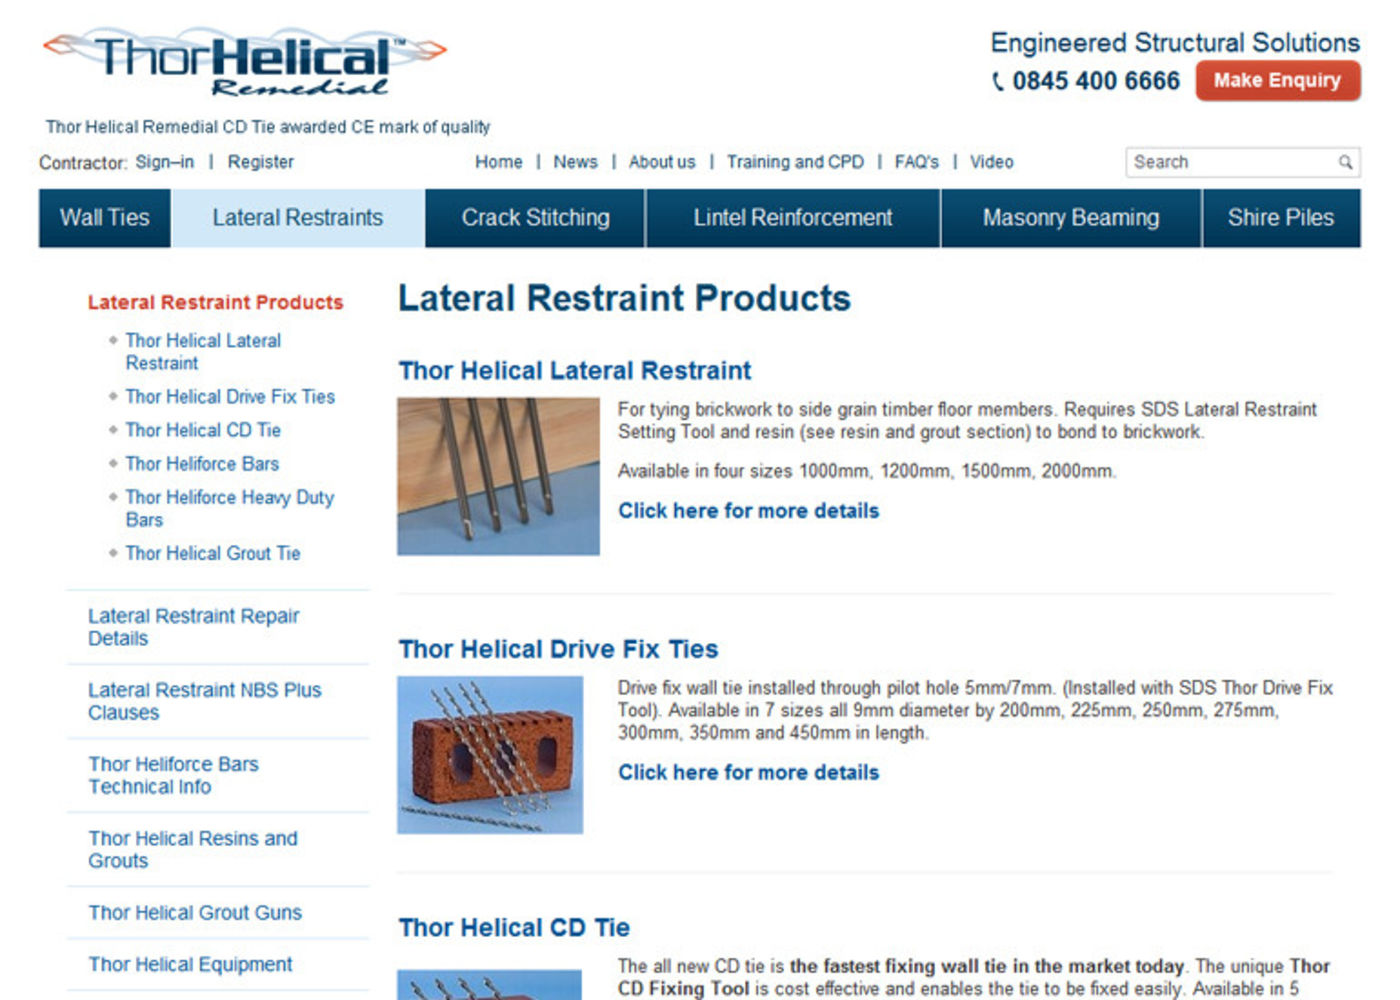 Thor Helical Remedial Products